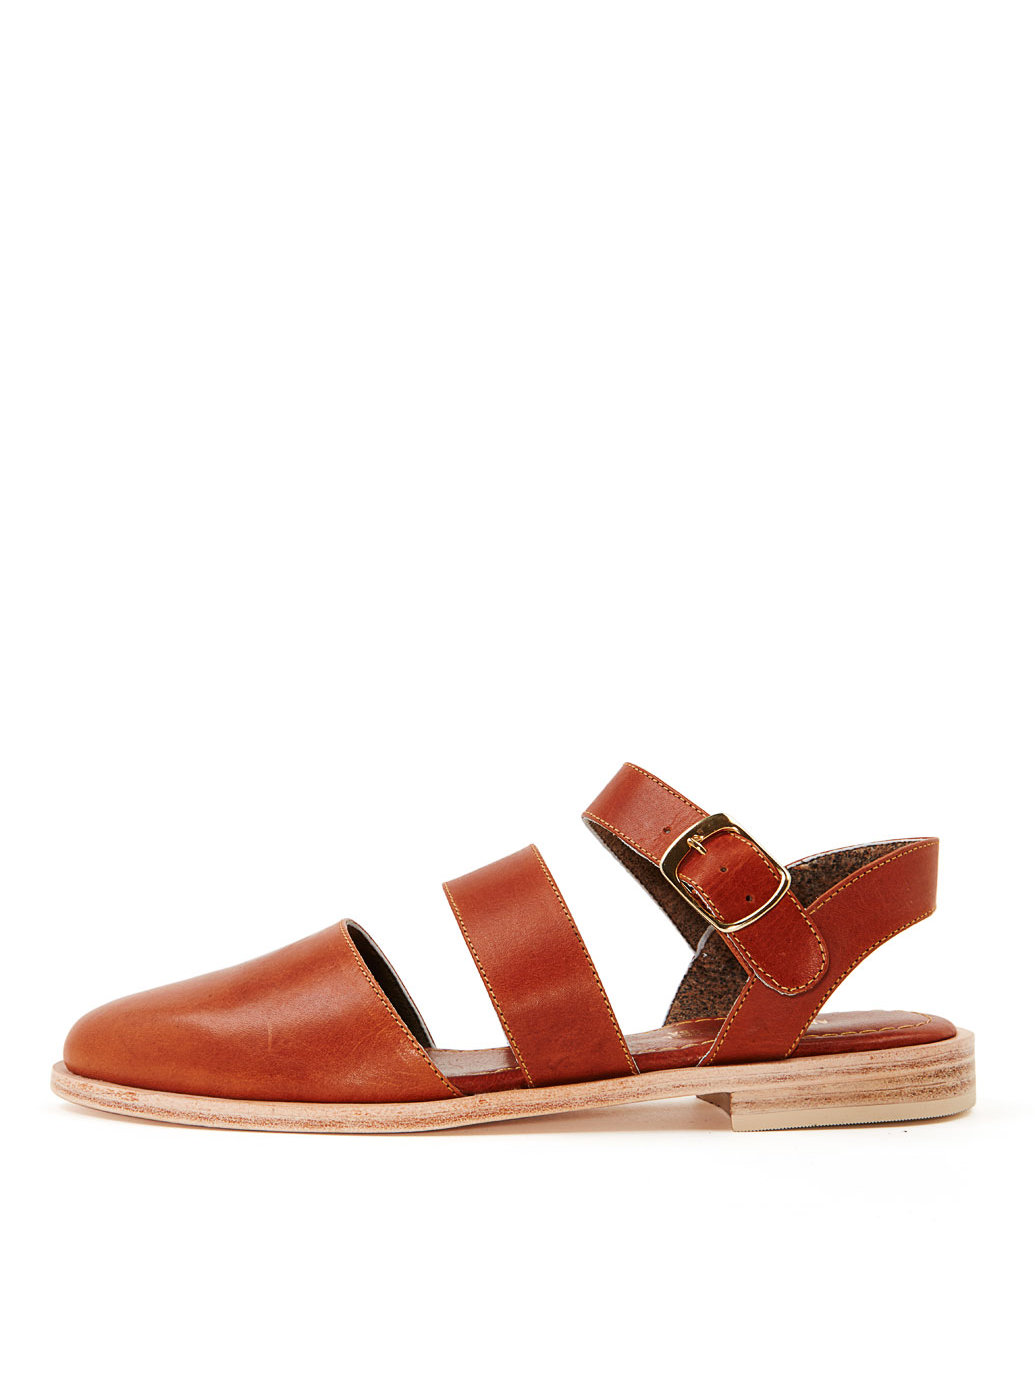 The Beverly Sandal   American Apparel